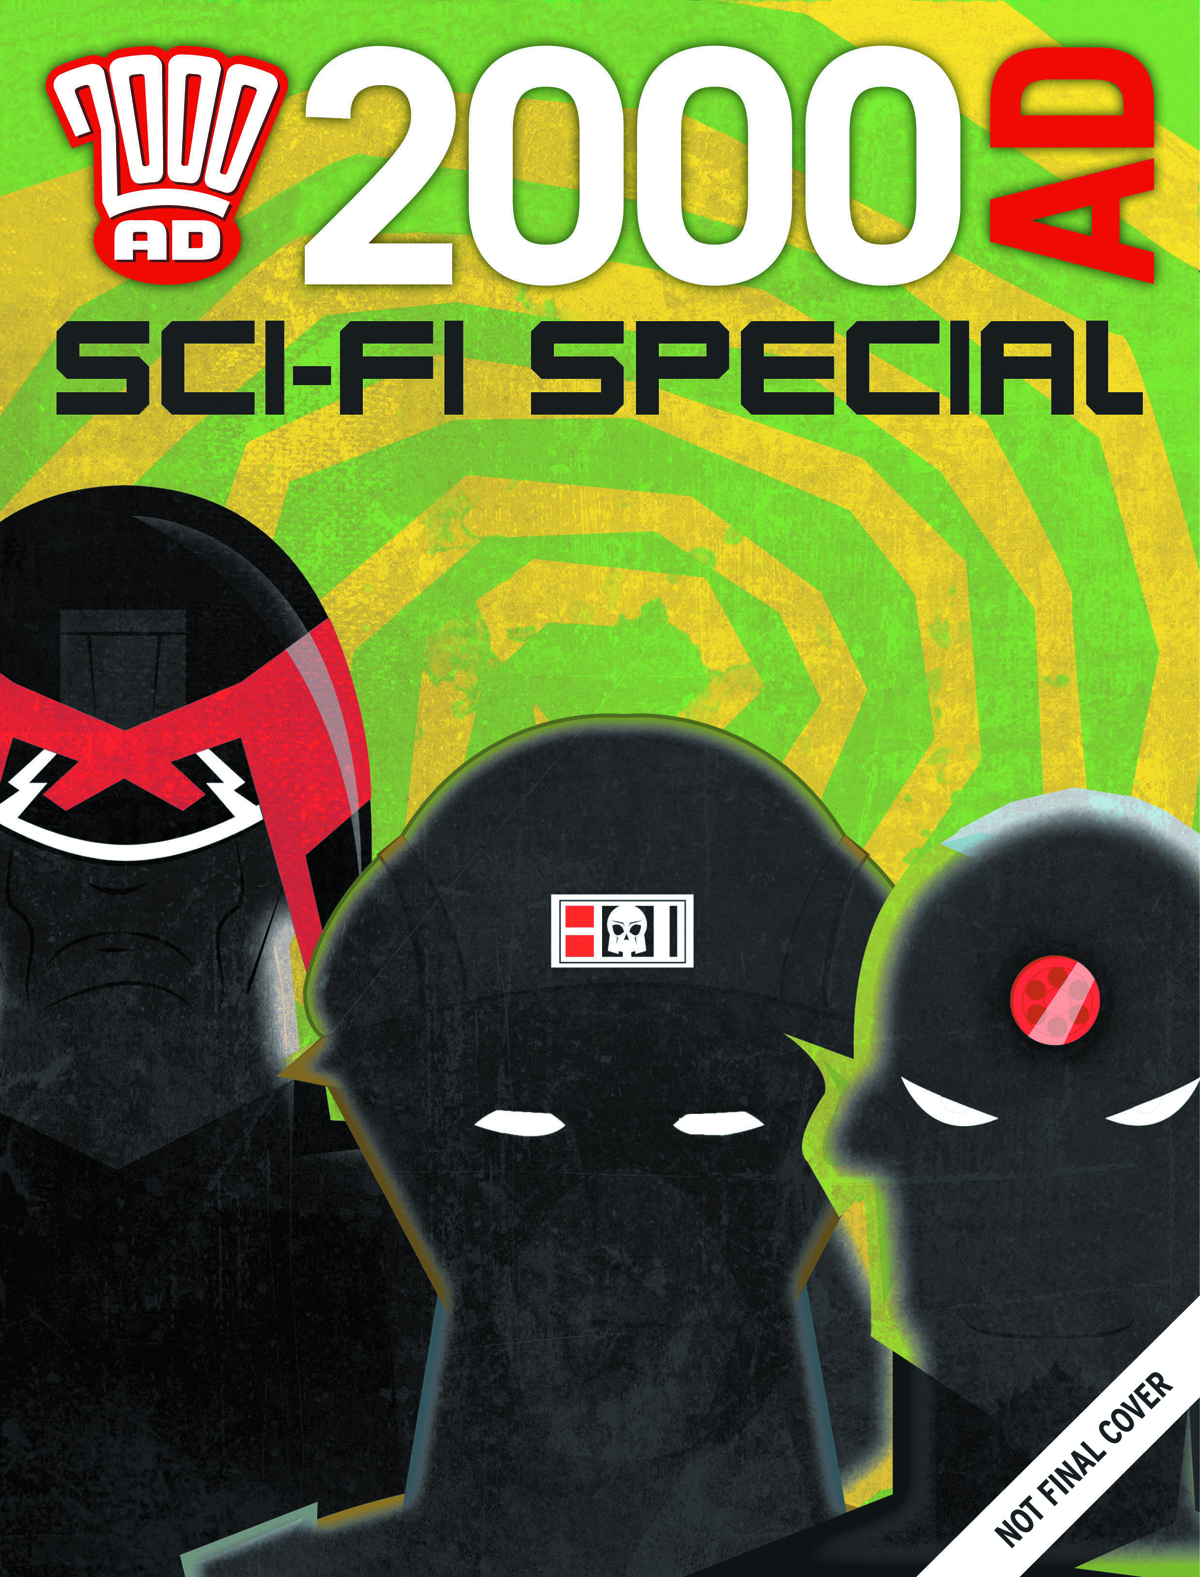 2000 AD SUMMER SCI-FI SPECIAL 2014